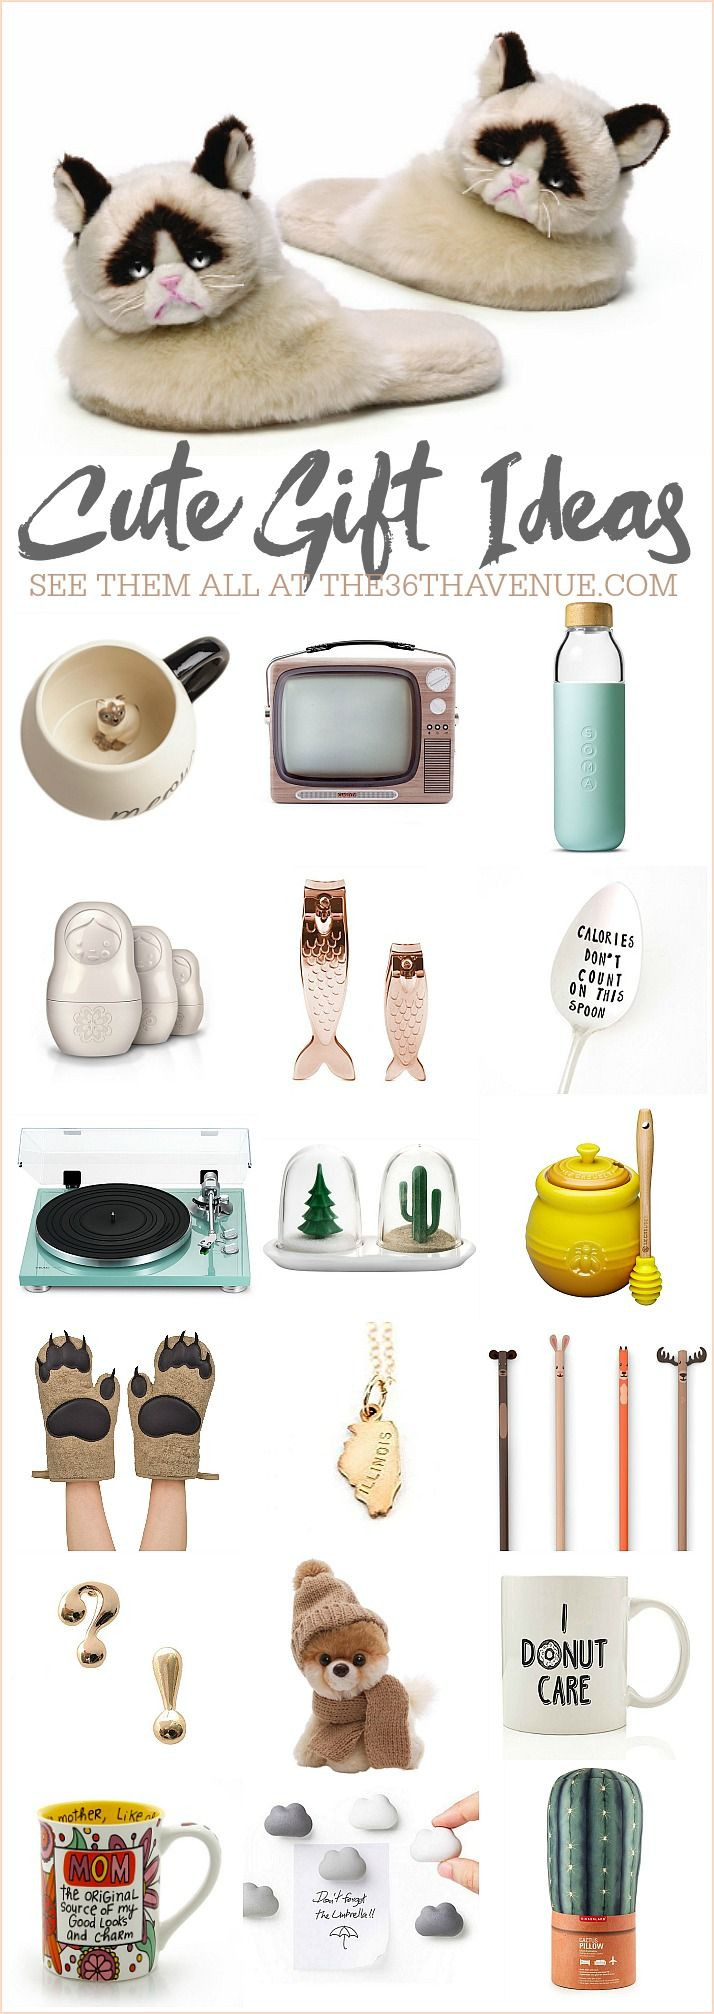 Best ideas about Unique Gift Ideas For Women . Save or Pin Best 25 Grumpy cat birthday ideas on Pinterest Now.